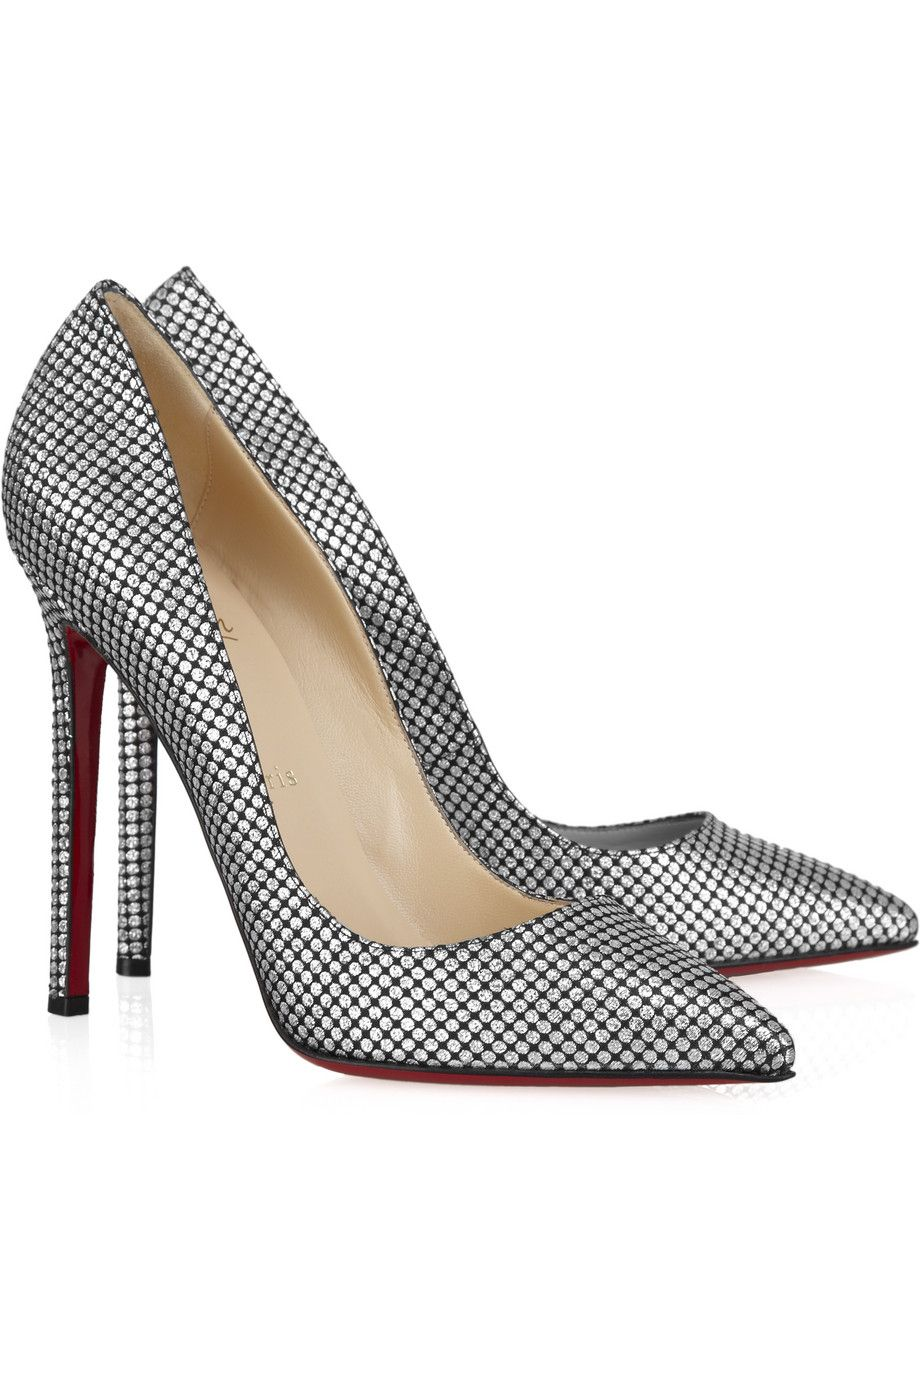 Christian Louboutin | Pigalle 120 polka-dot pump~really perfect shoes